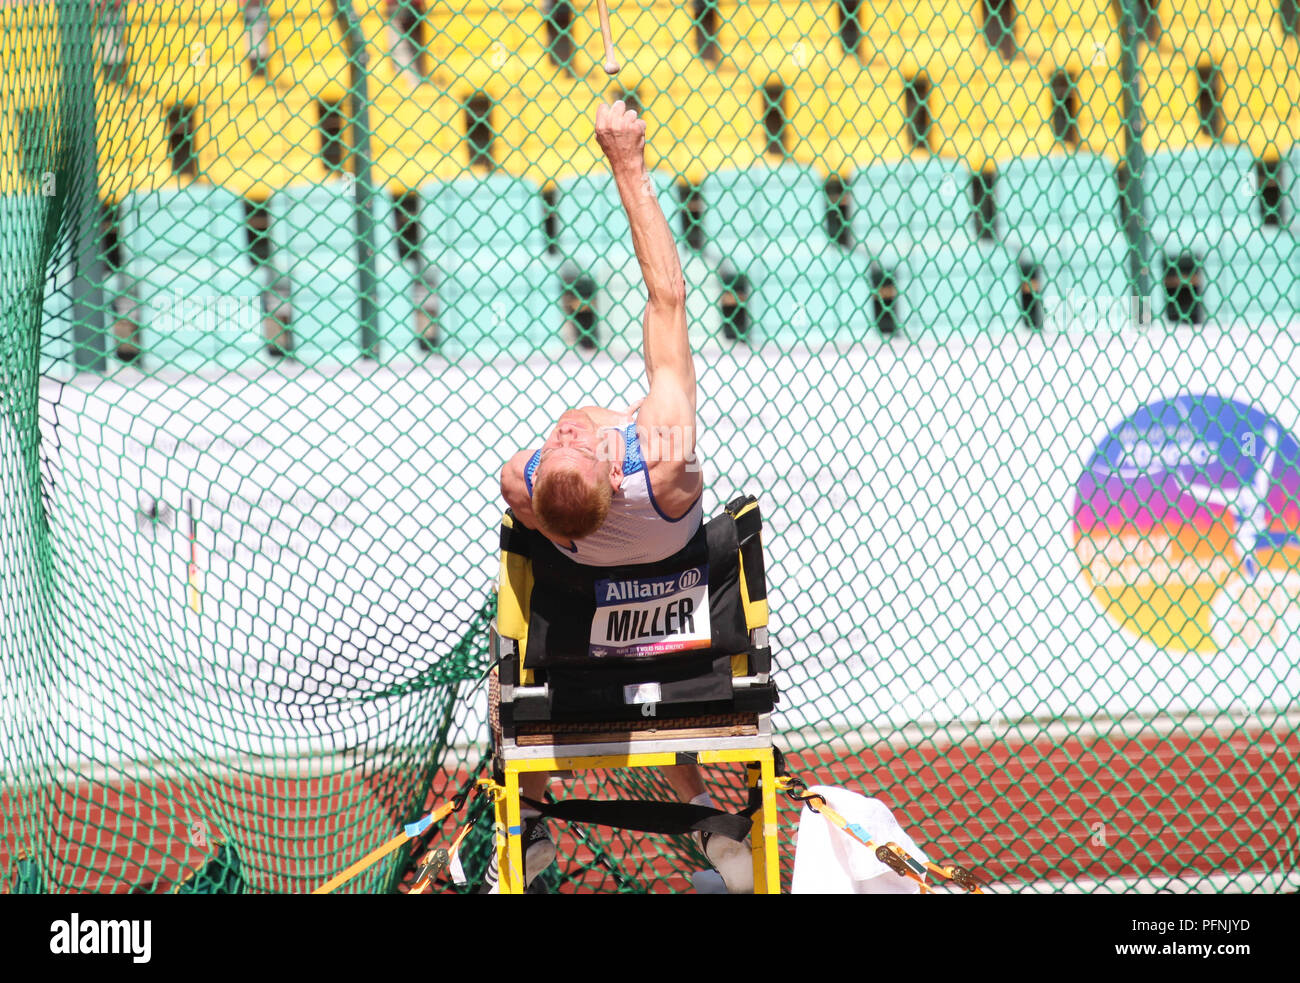 Berlin, Germany. 22nd August, 2018. Stephen Miller competes in the mens Club Throw during Day 3 of the World Para Athletics European Championships in Berlin, Germany Credit: Ben Booth/Alamy Live News - Stock Image